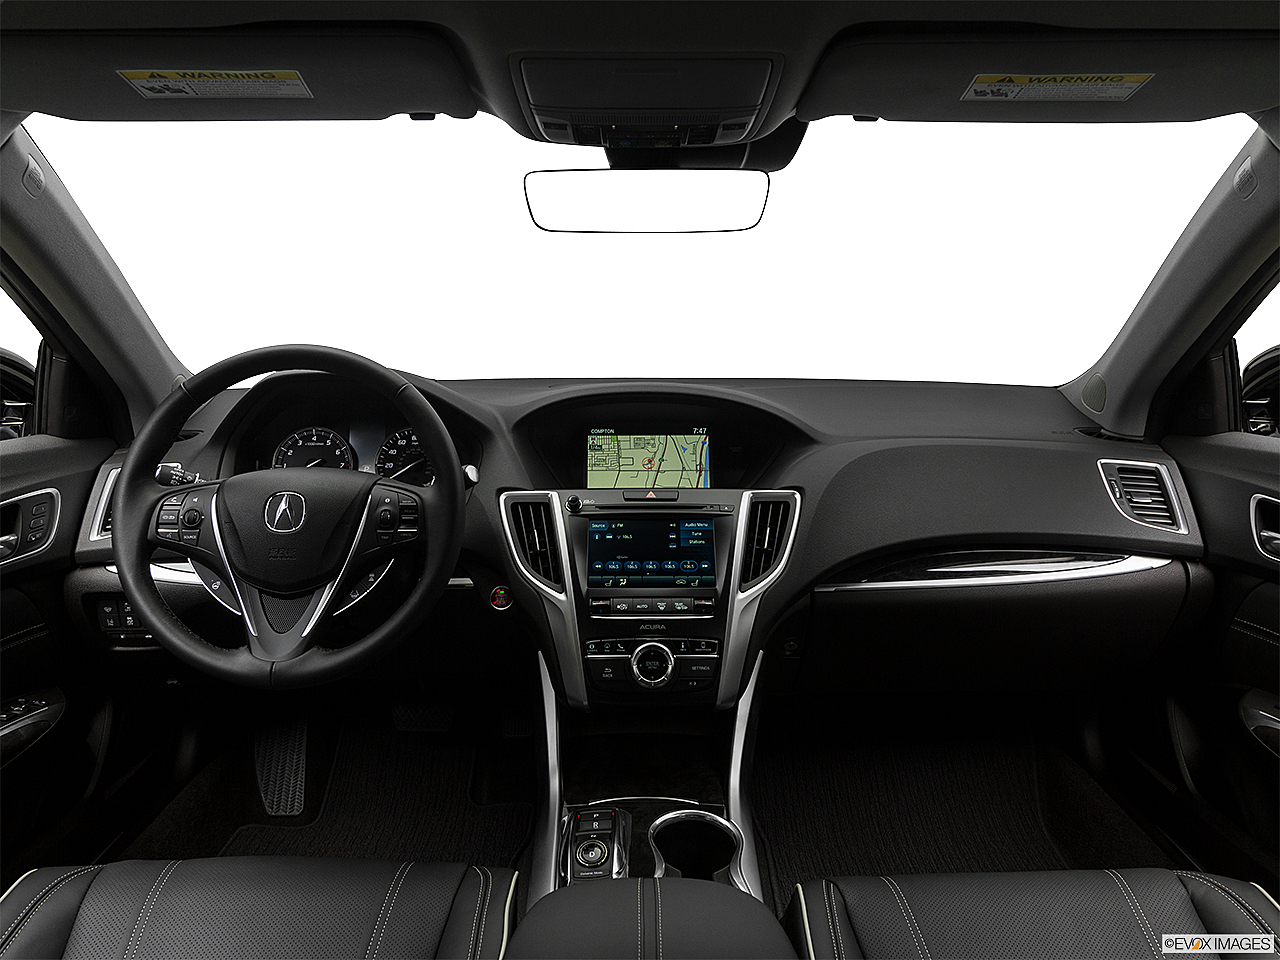 2018 Acura TLX 3.5L, centered wide dash shot